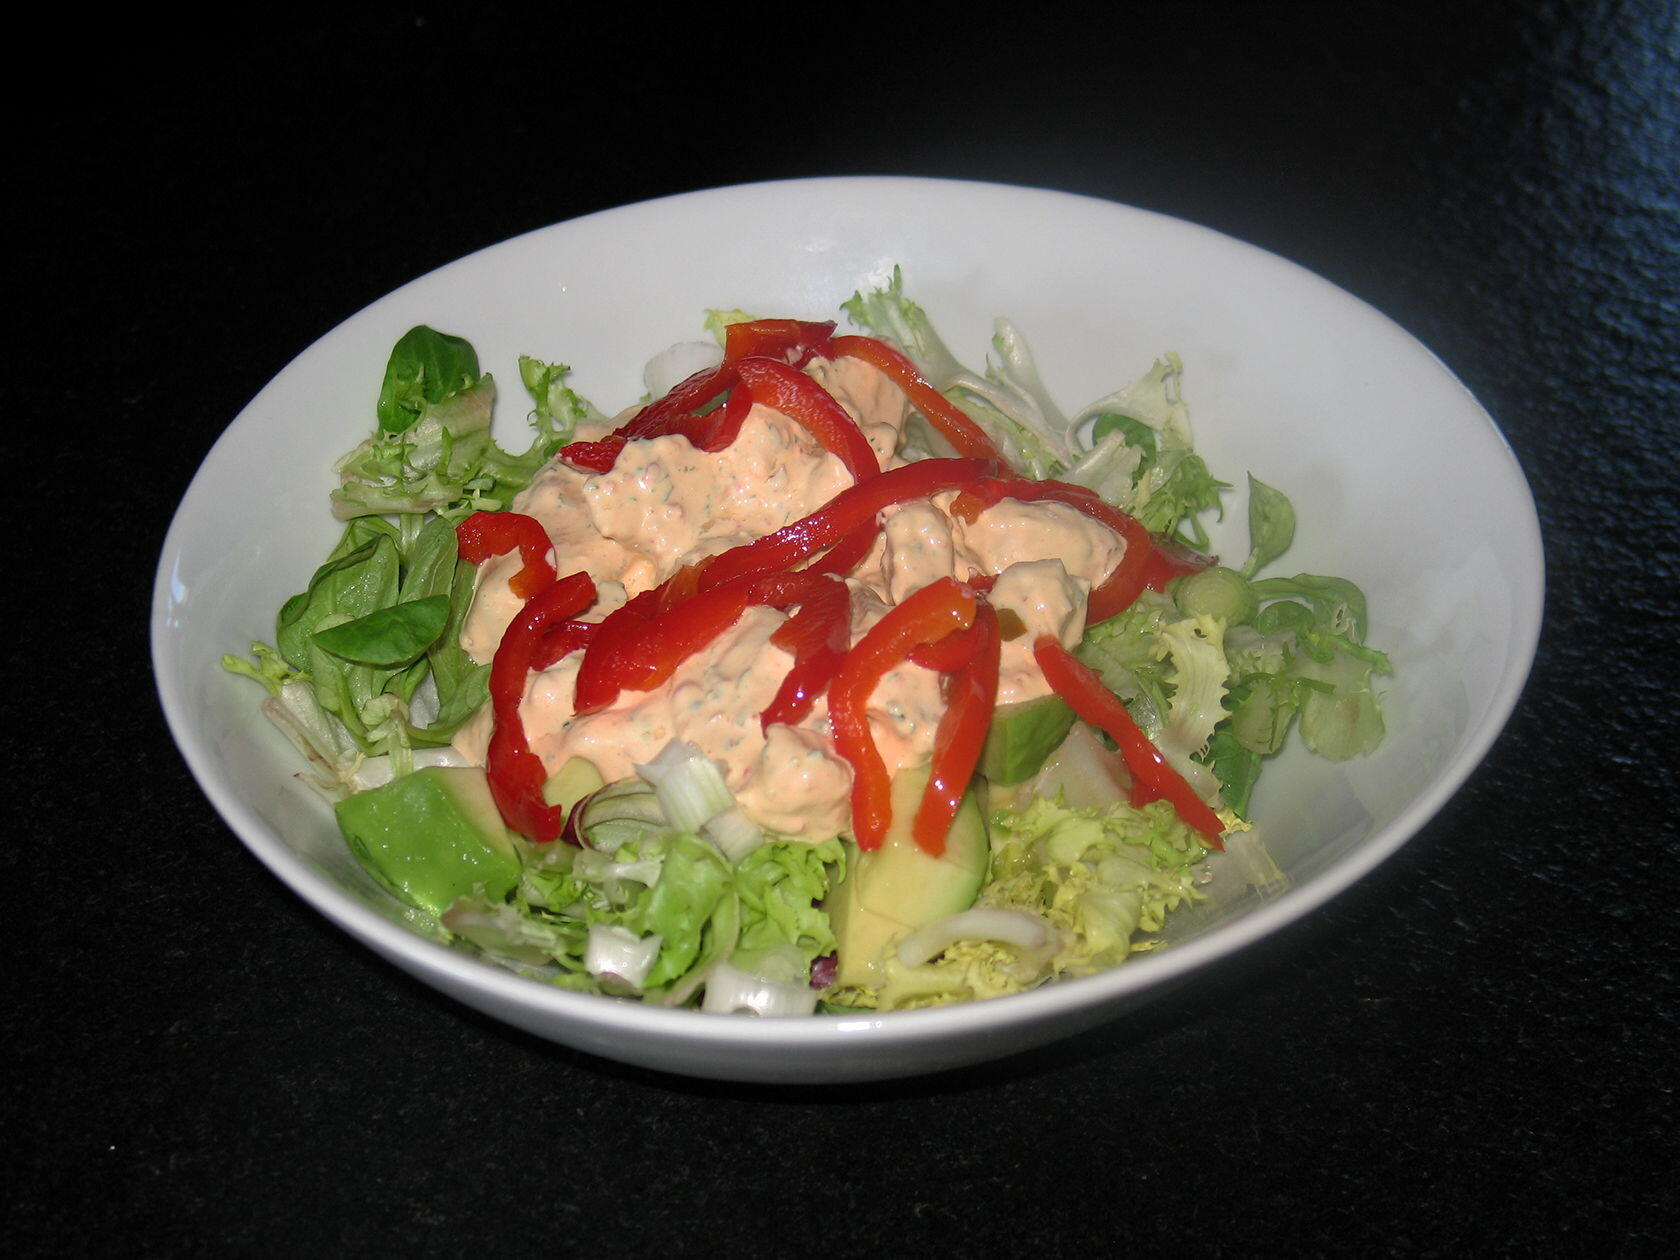 Red Pepper Summer Chicken Salad @Masdaugustine